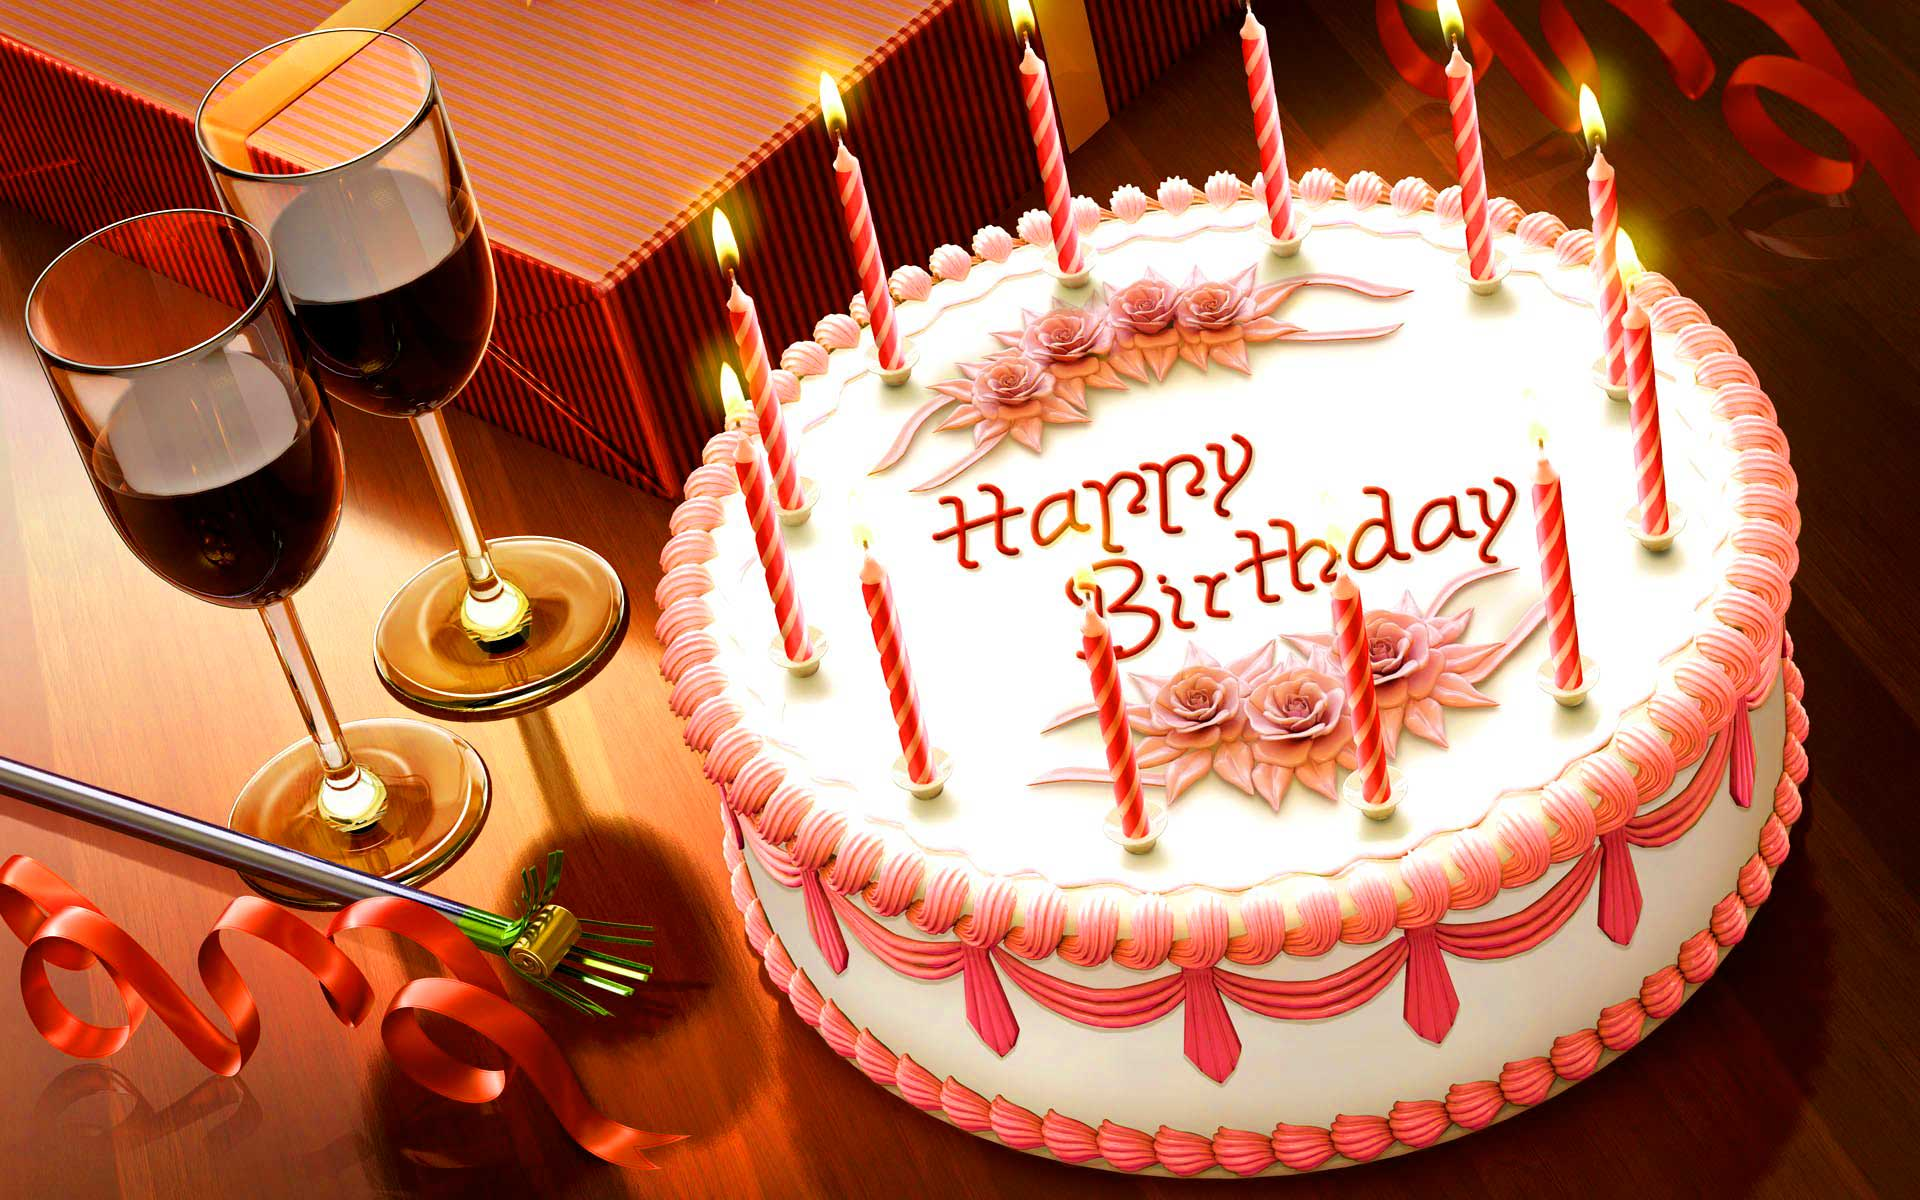 Wallpaper download birthday cake - Birthdaycake